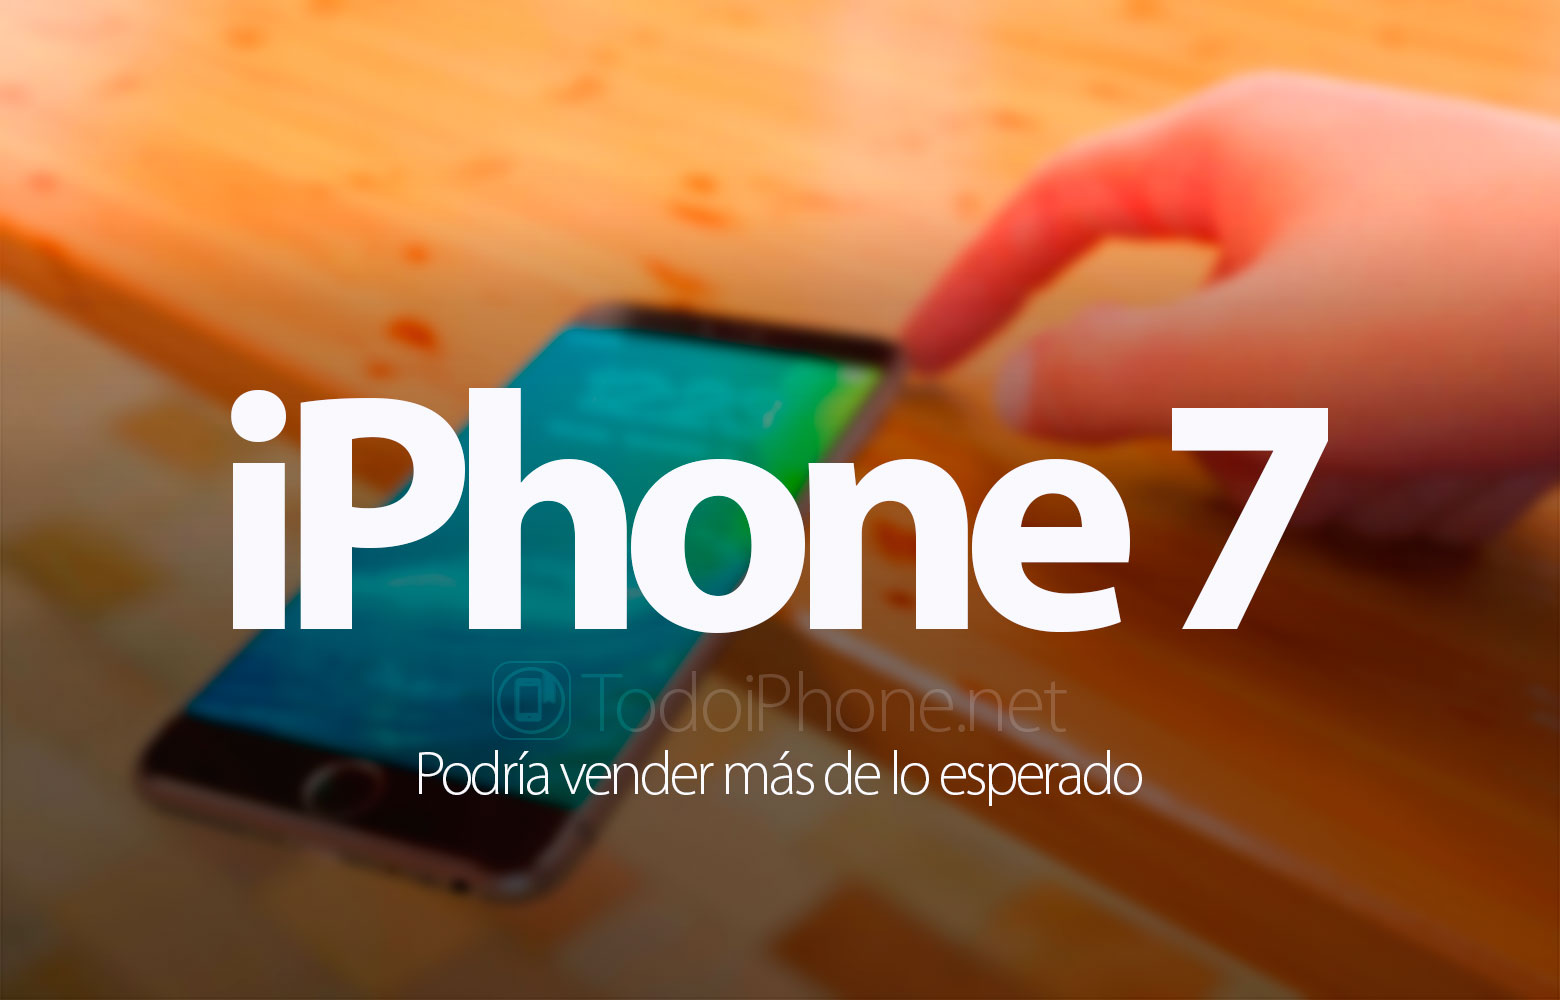 iphone-7-podria-vender-mas-esperado